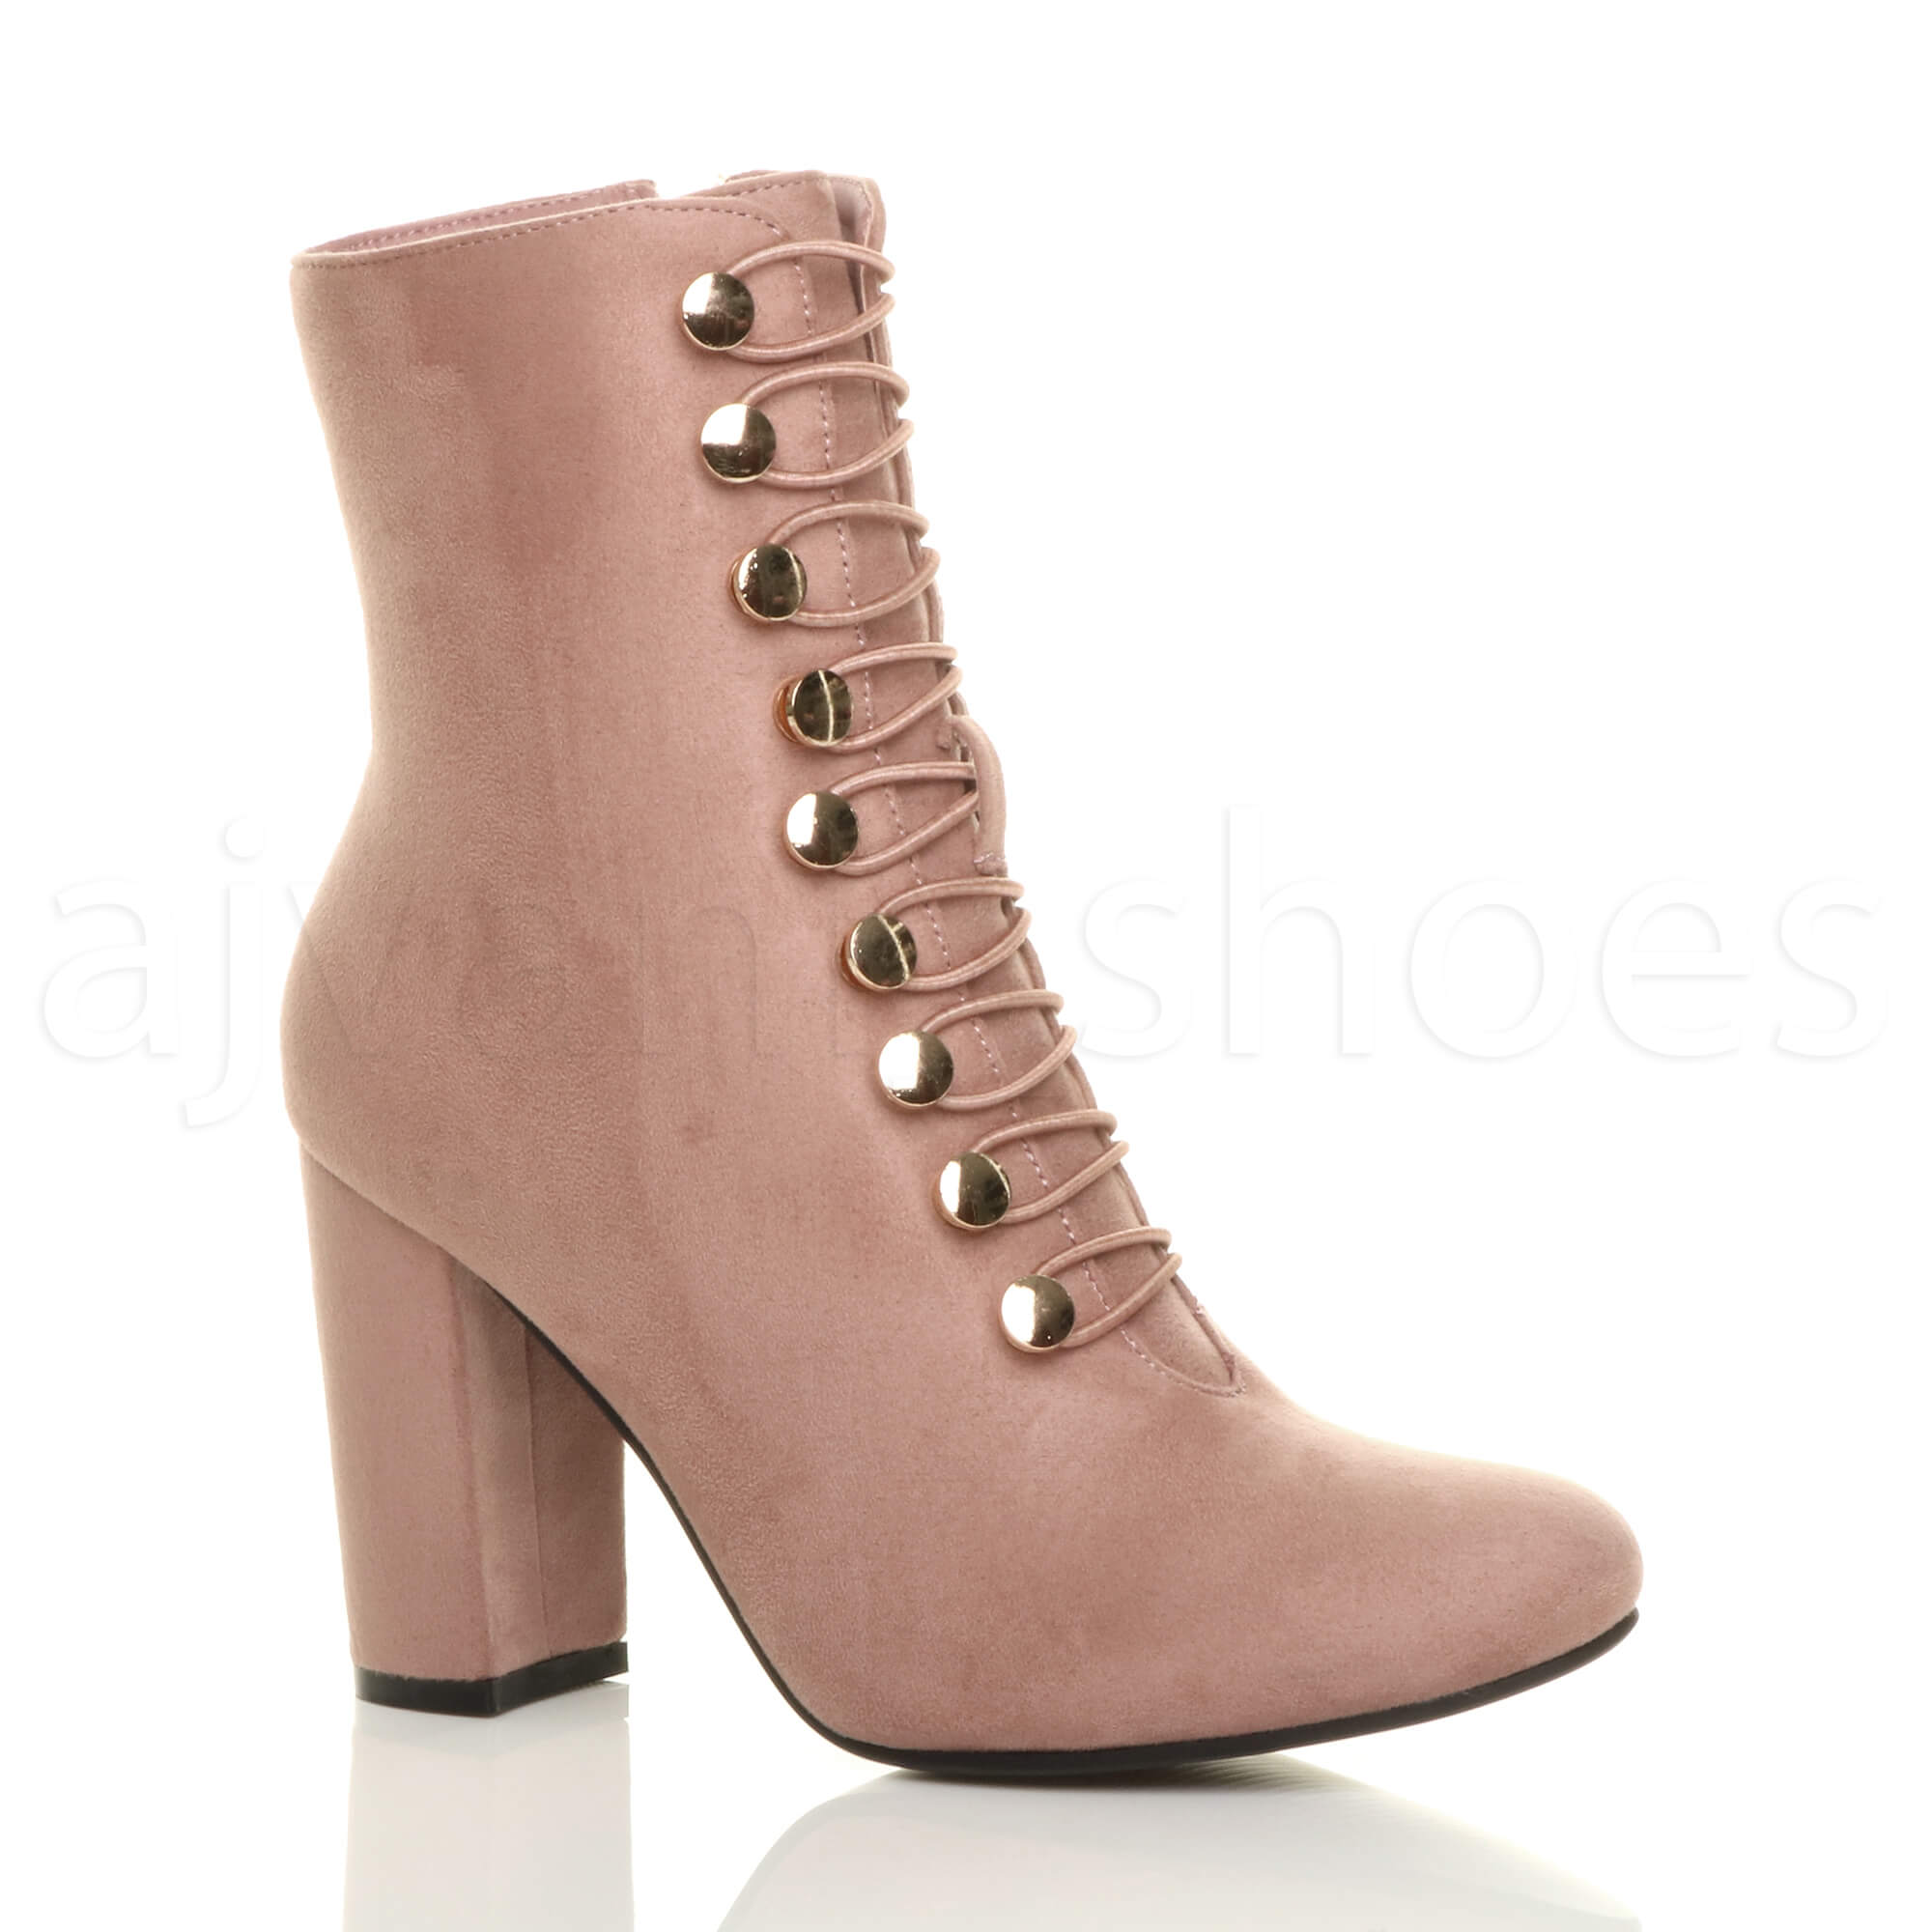 WOMENS-LADIES-HIGH-BLOCK-HEEL-ELASTIC-GOLD-BUTTON-ZIP-MILITARY-ANKLE-BOOTS-SIZE